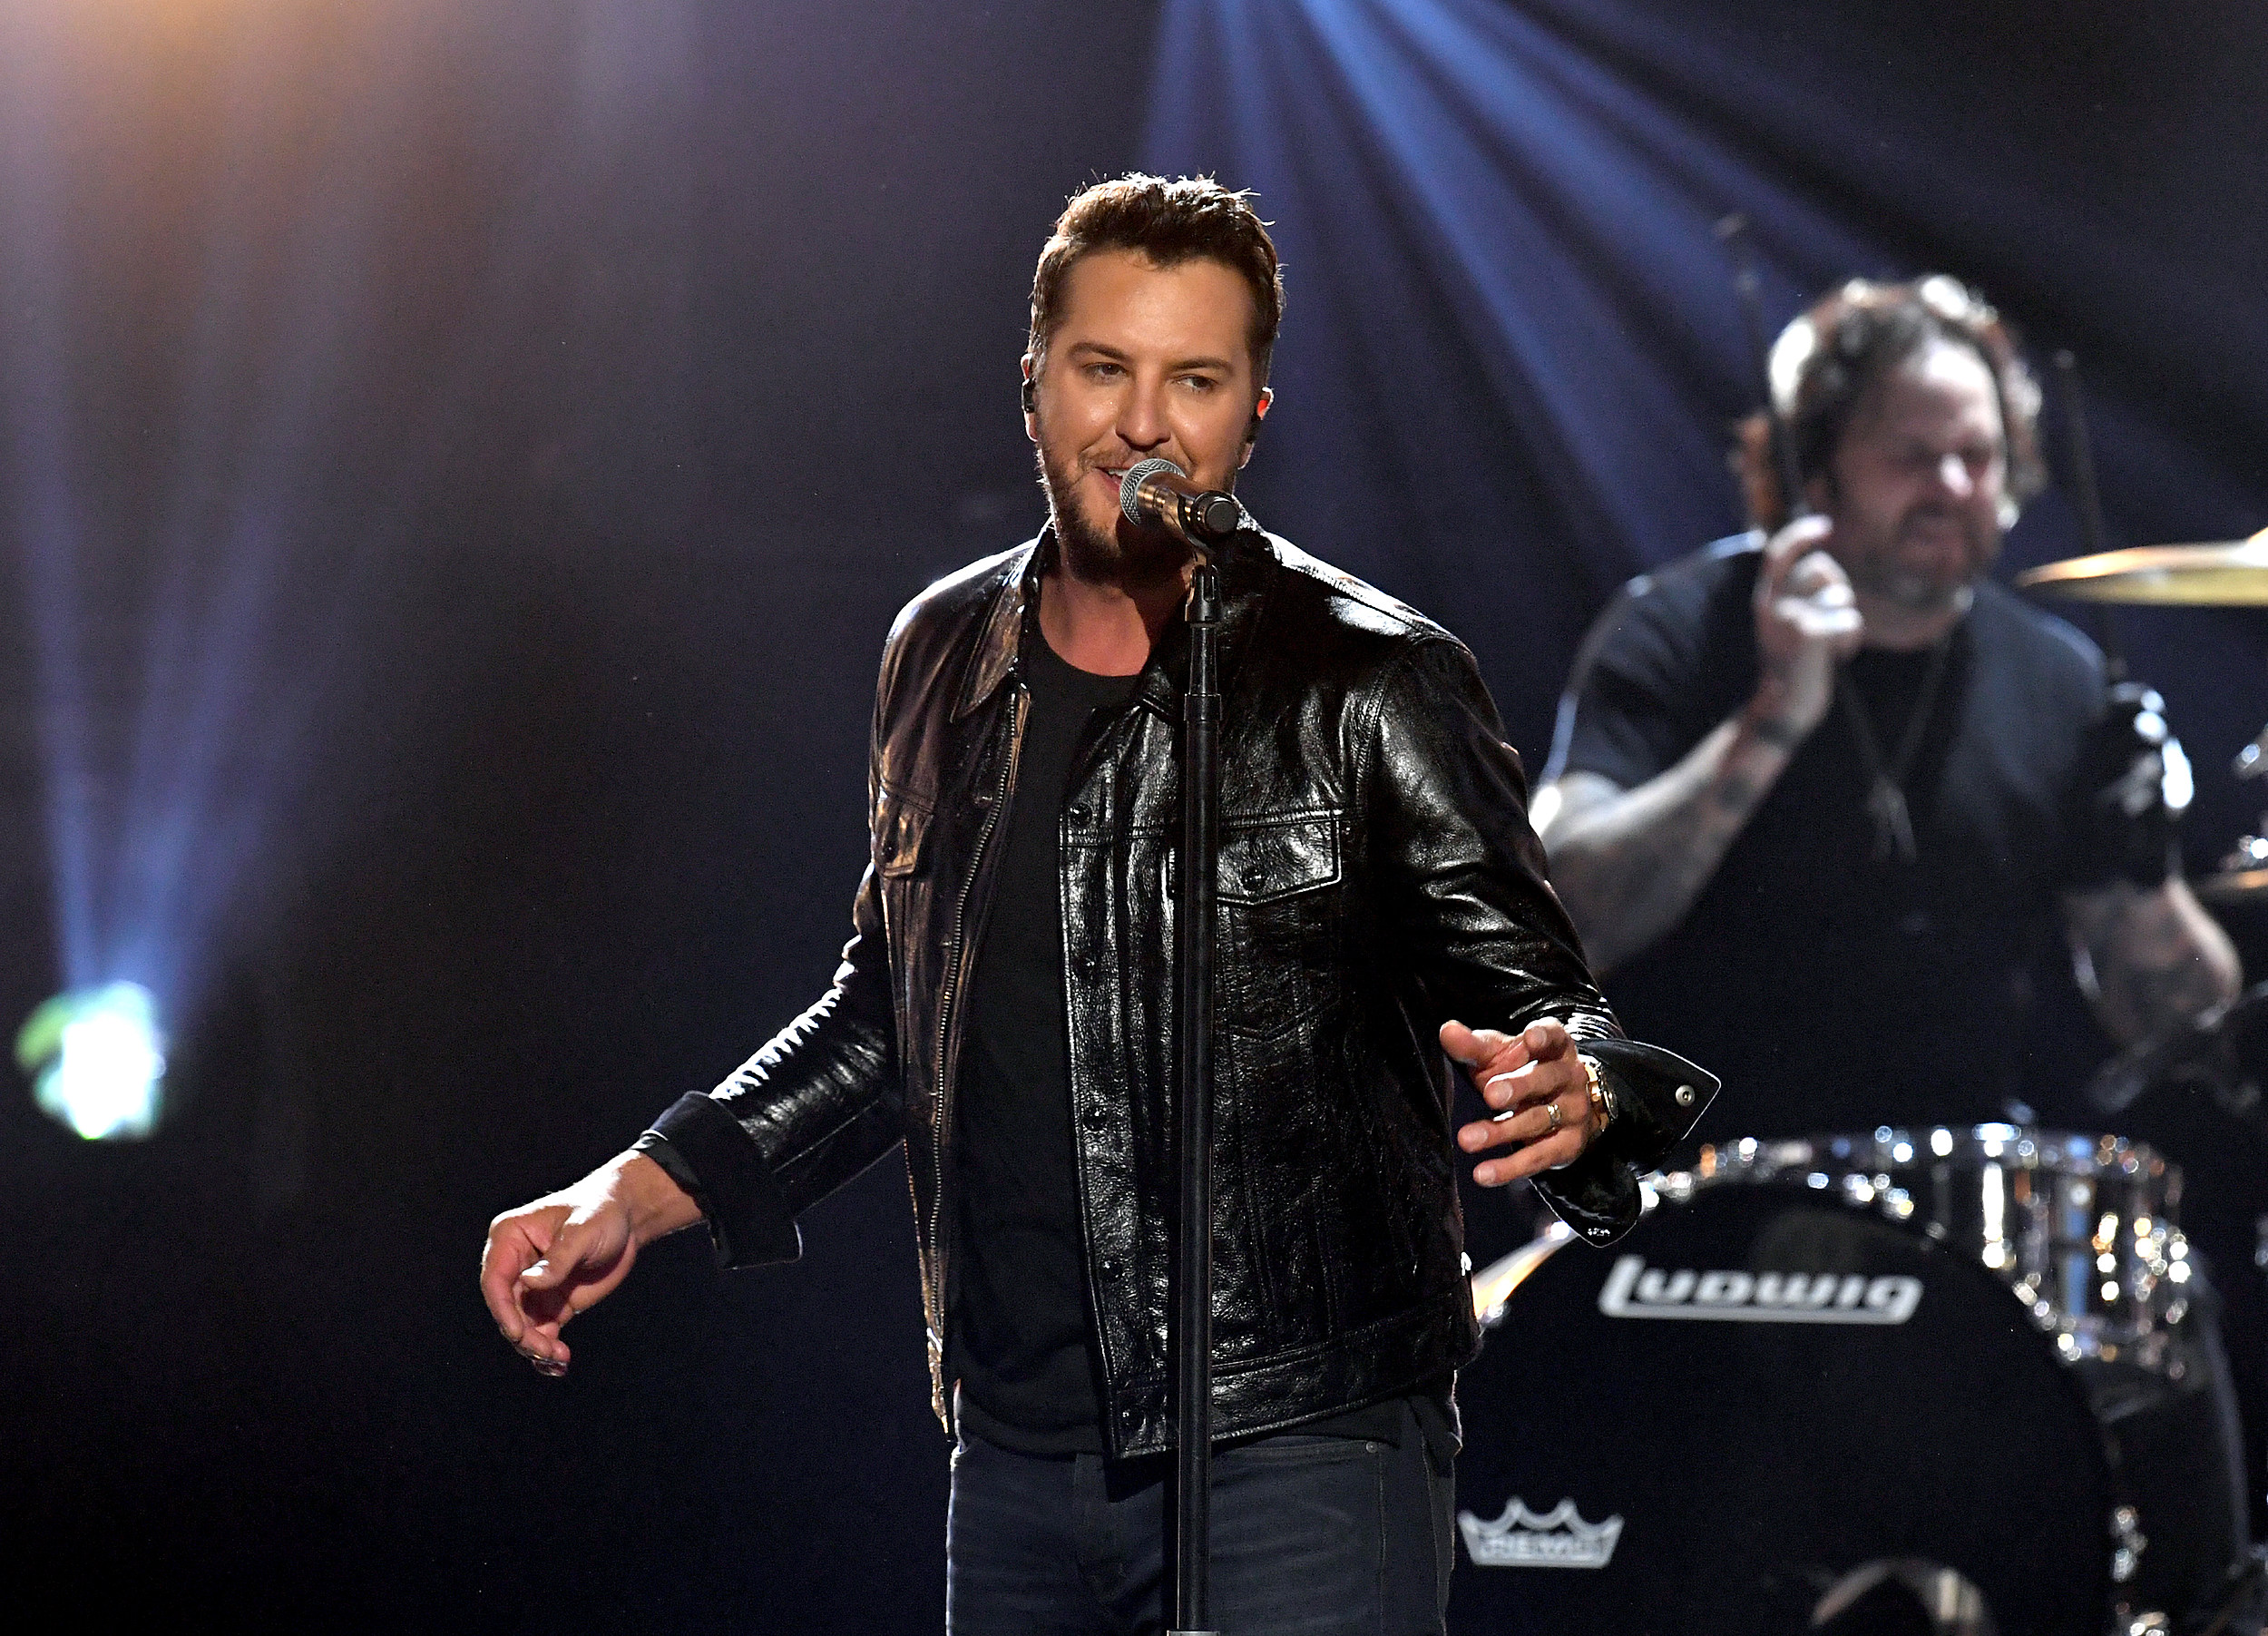 8783d99f19149 10 Things You Probably Don t Know About Luke Bryan